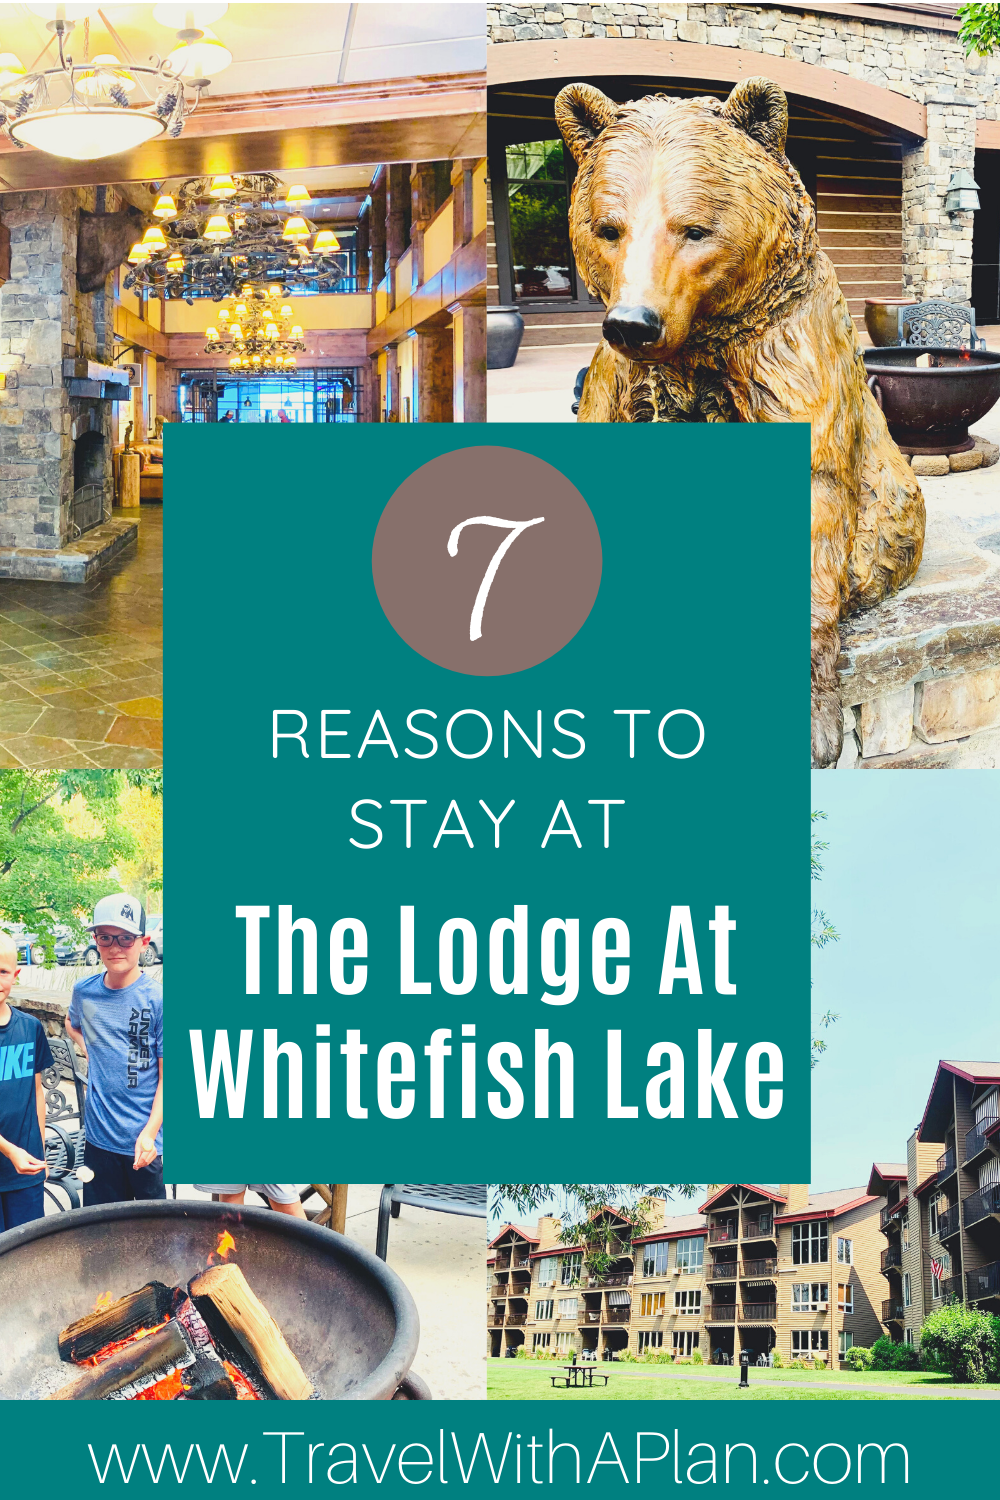 7 Reasons to Stay at The Lodge at Whitefish Lake (From Top US Family Travel Blog, Travel With A Plan)!